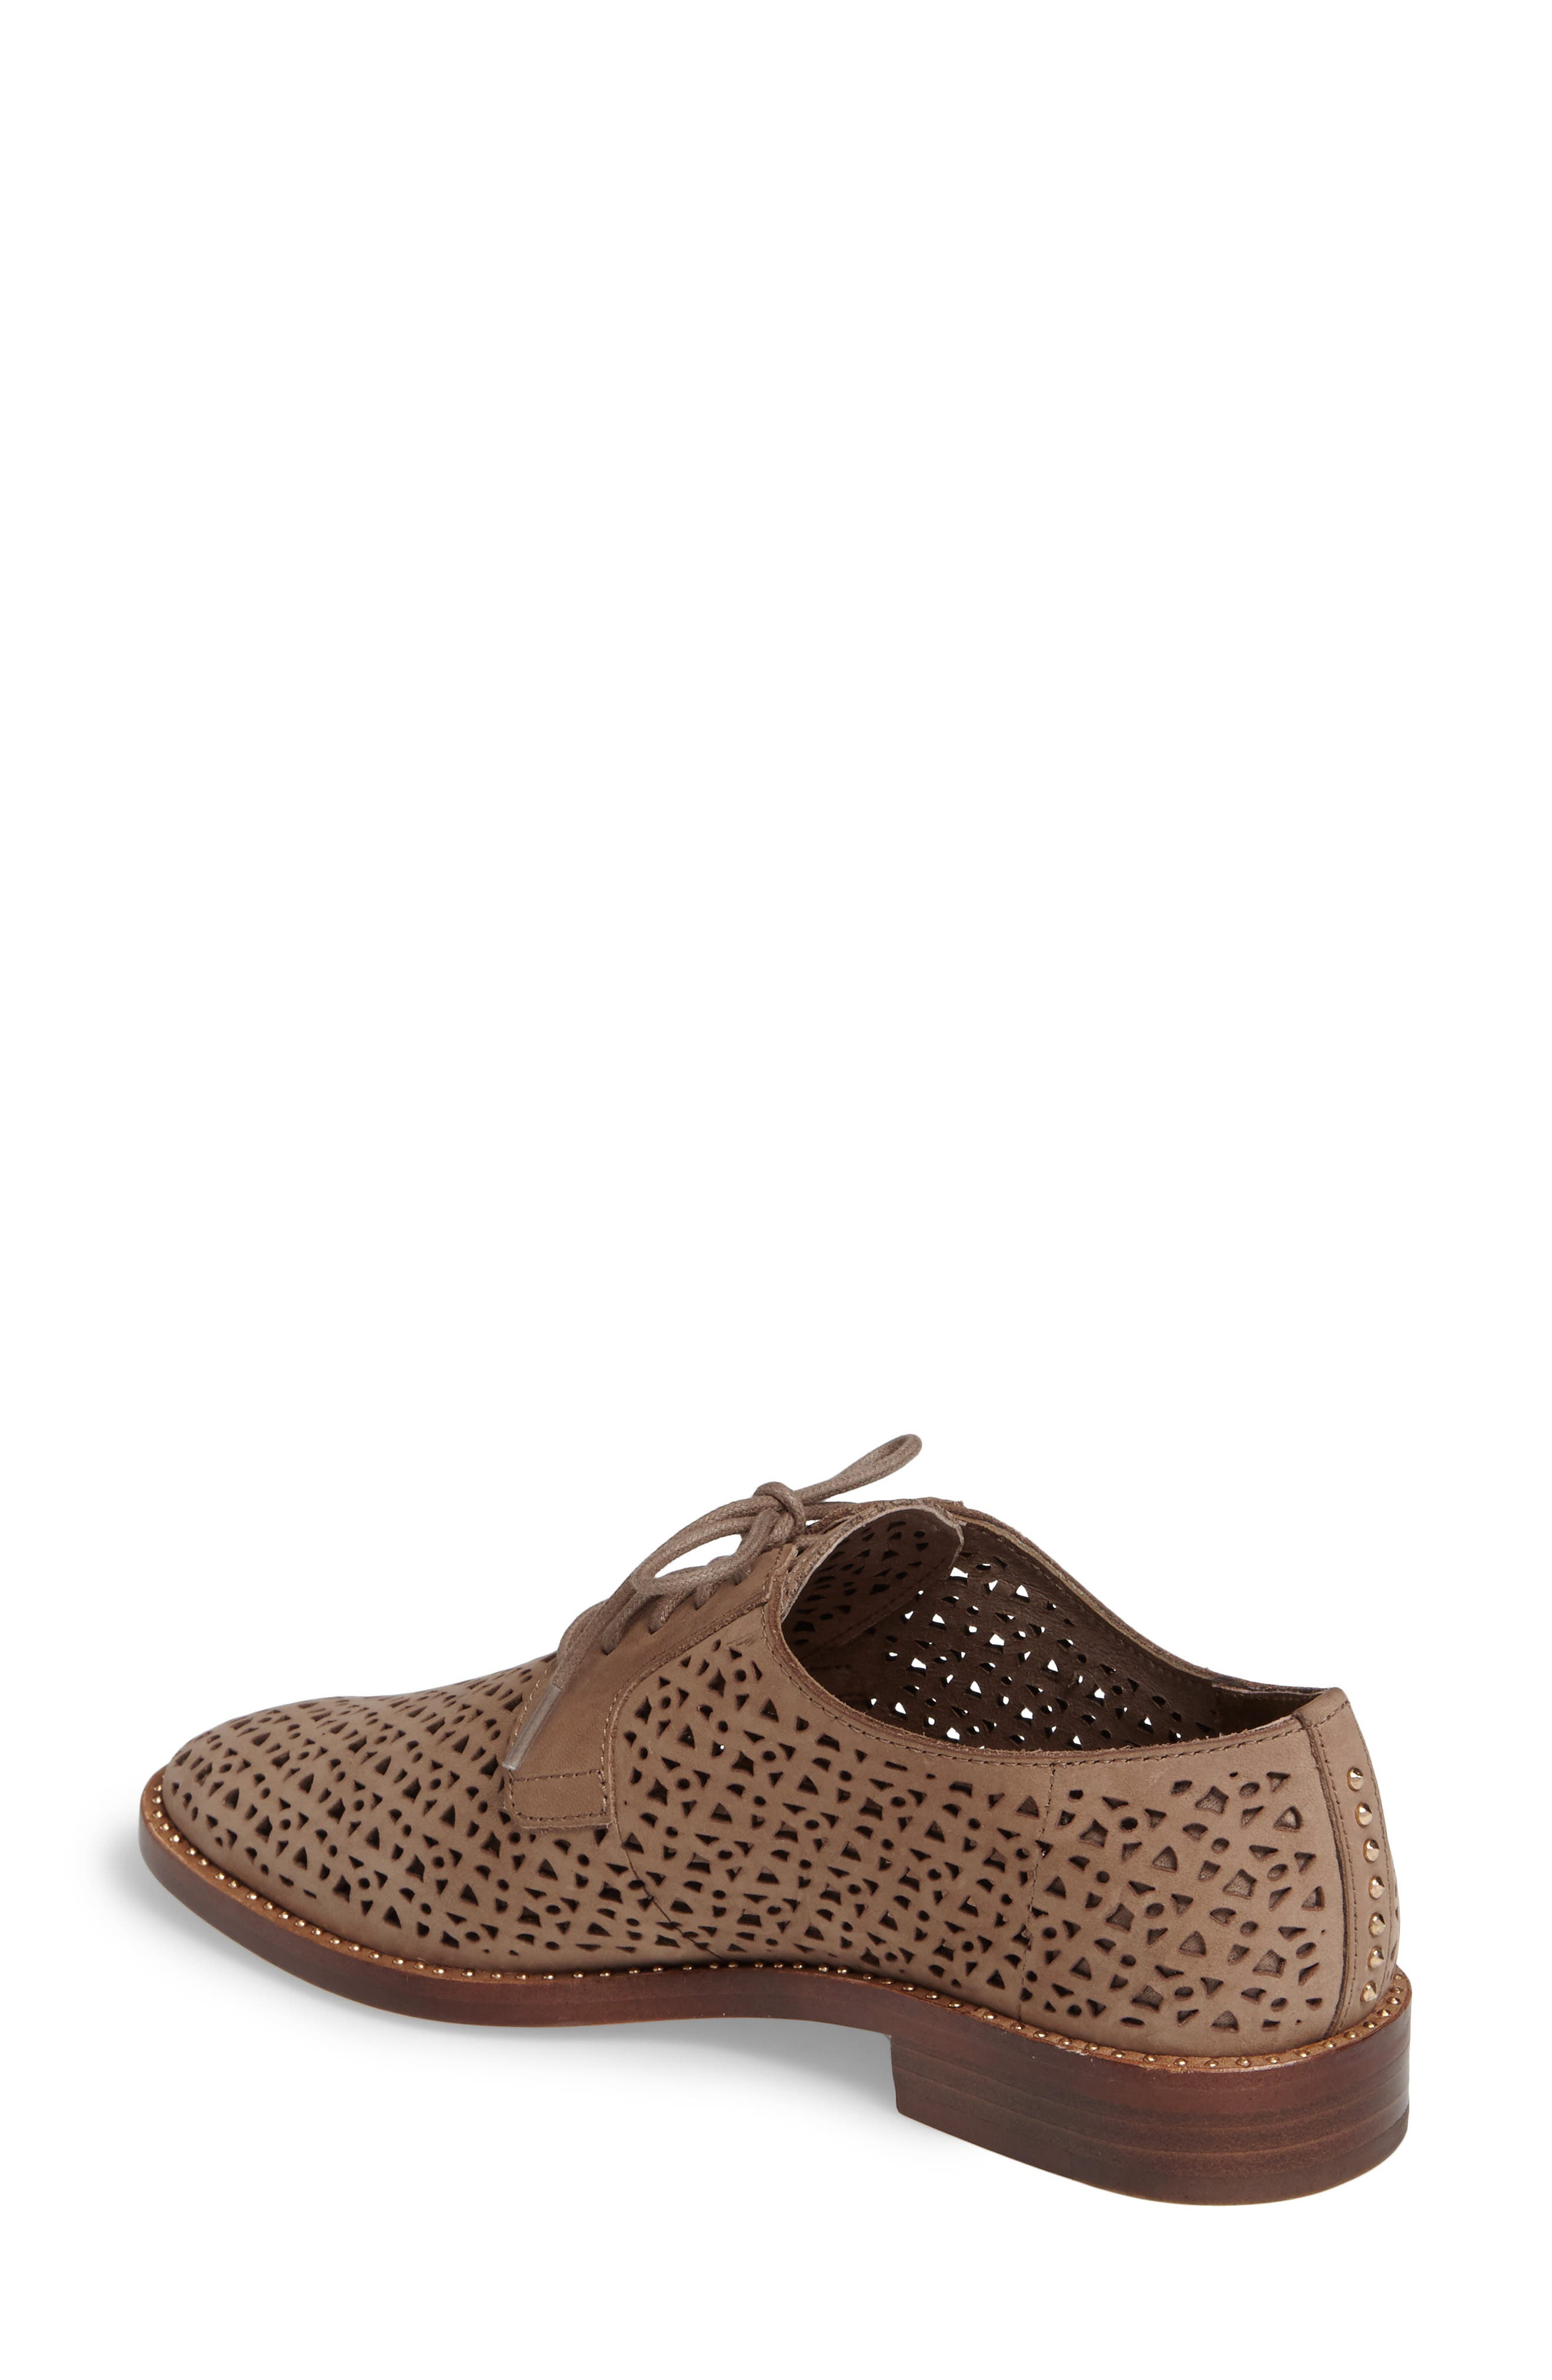 Lesta Geo Perforated Oxford,                             Alternate thumbnail 2, color,                             French Taupe Suede